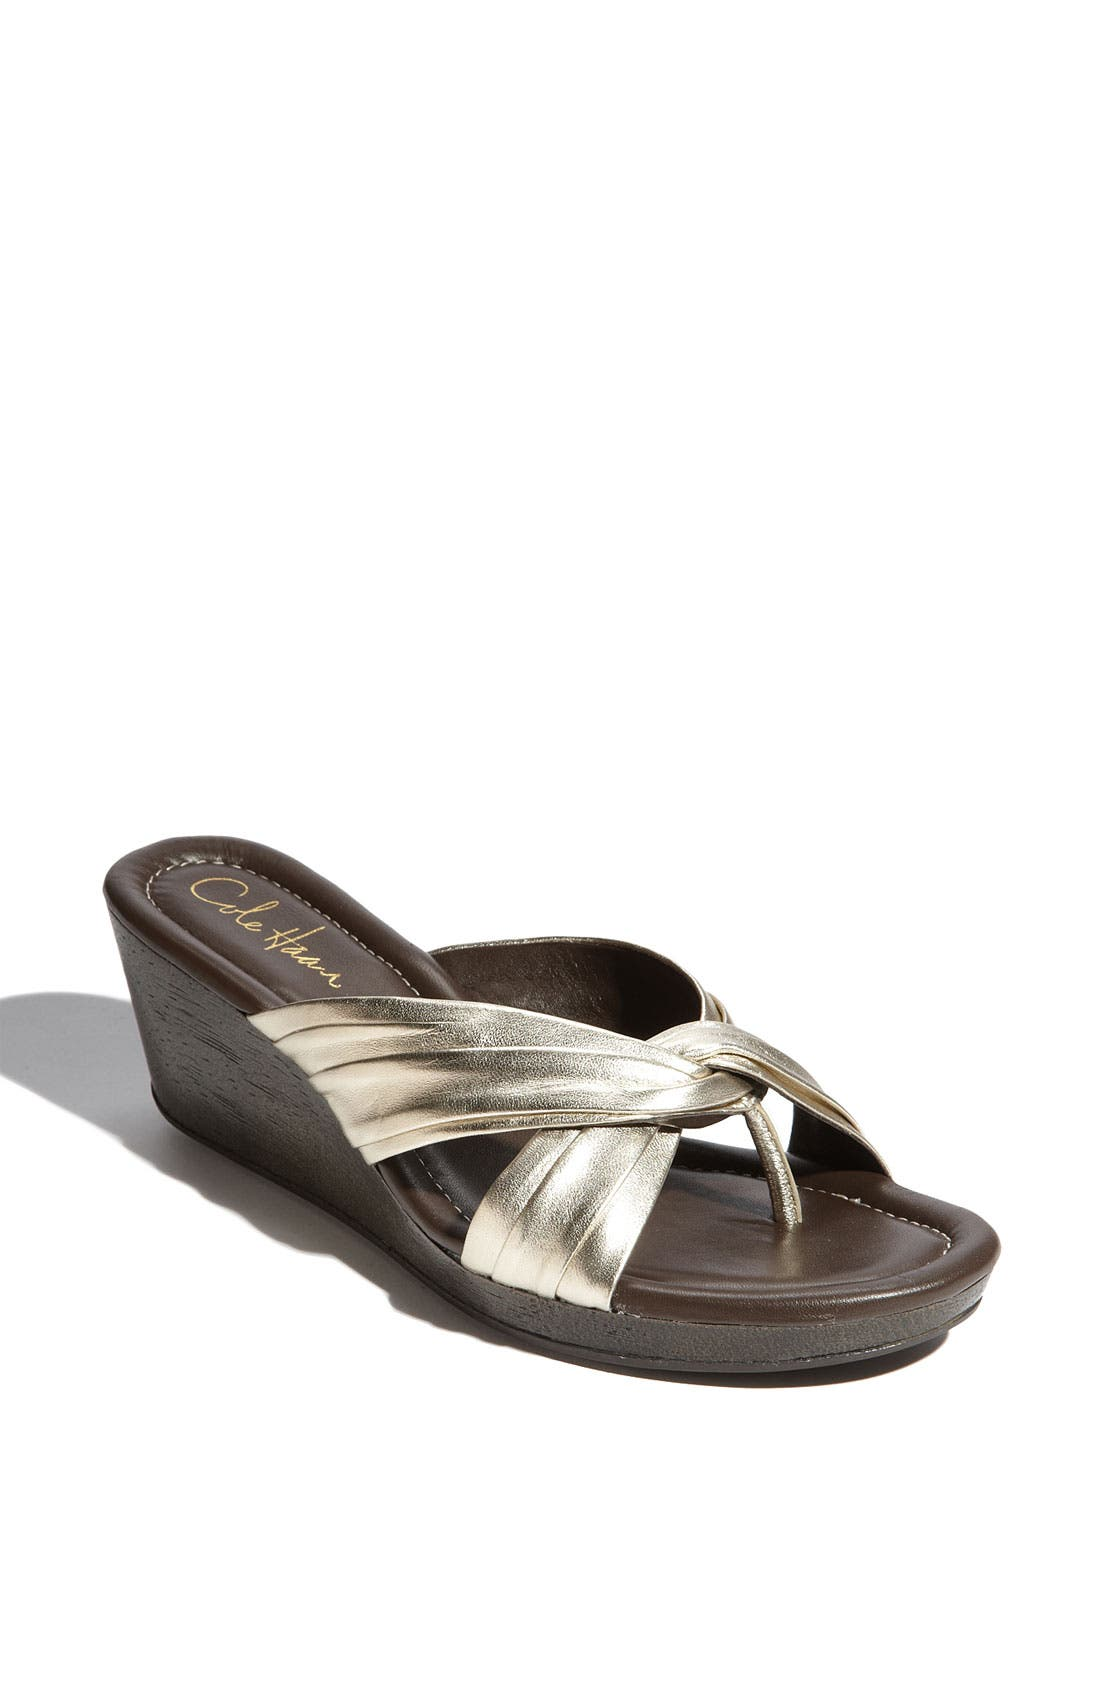 Alternate Image 1 Selected - Cole Haan 'Air Eden' Thong Sandal